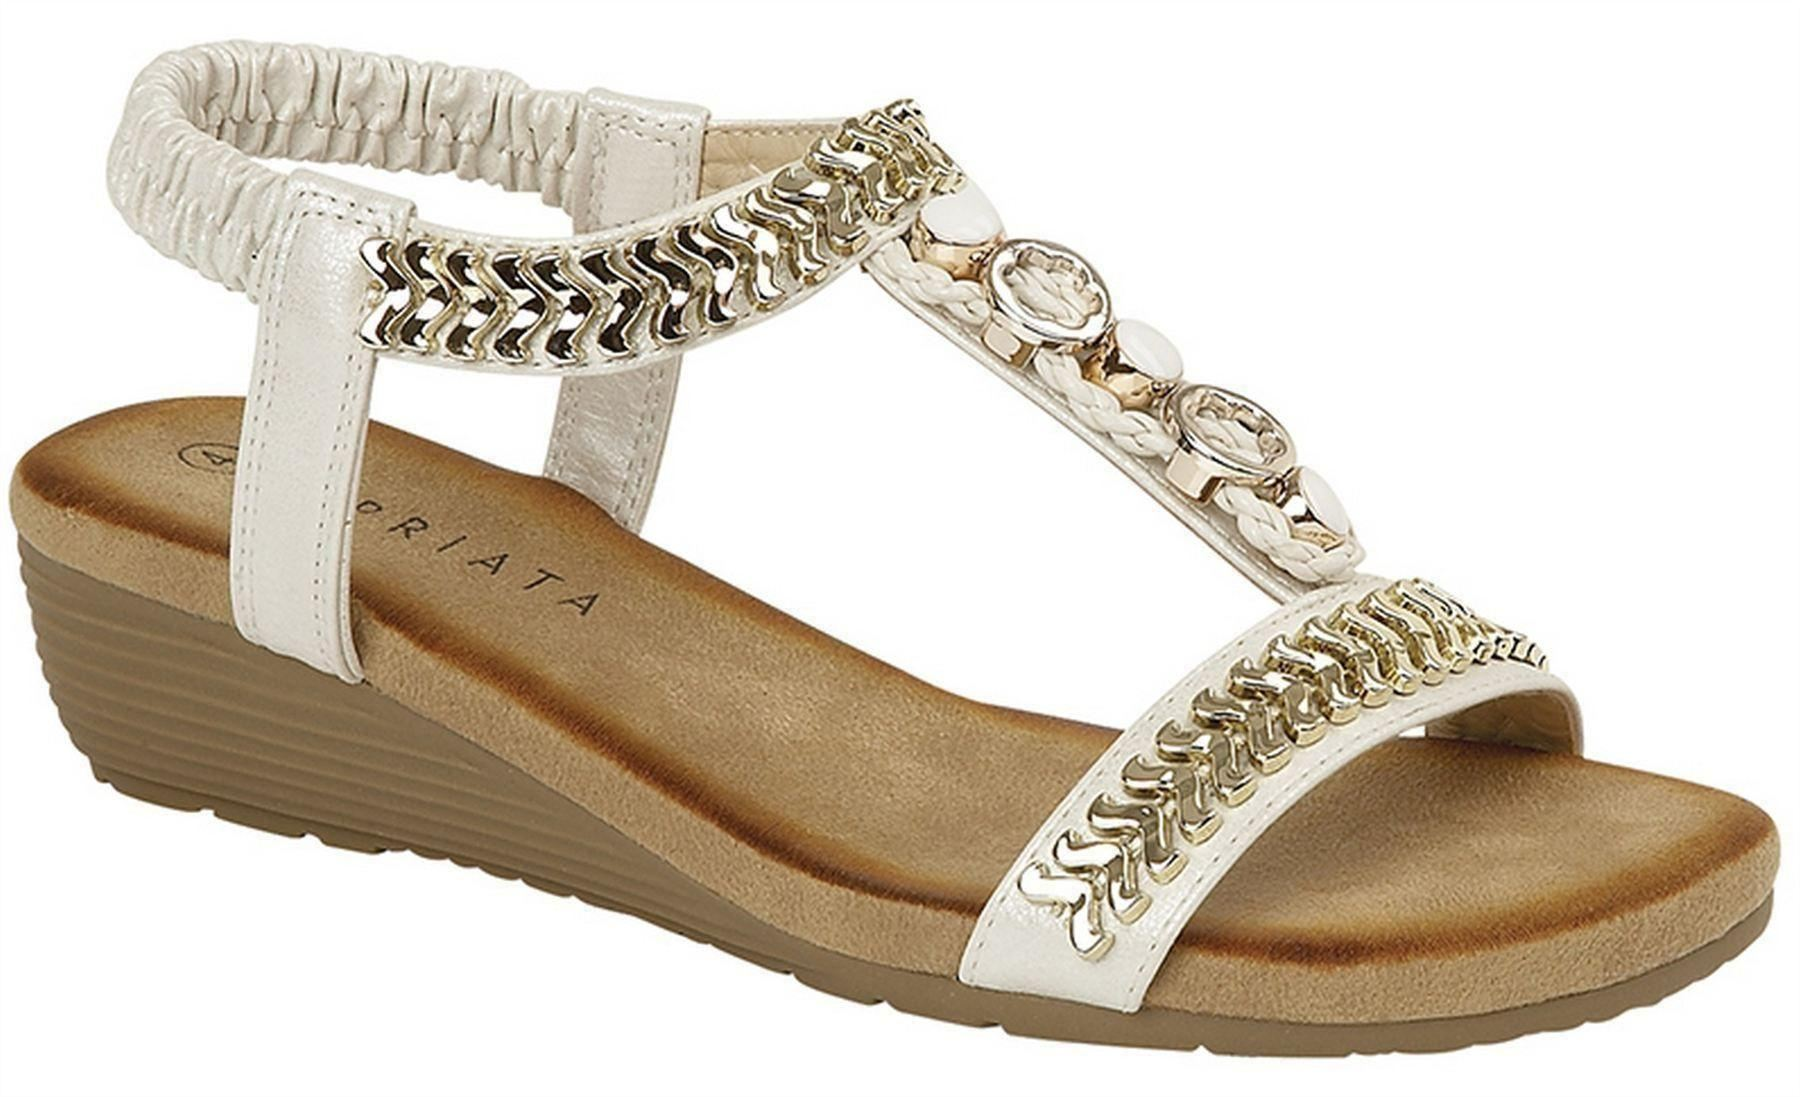 1925594c762 Ladies Womens Sandals Gold Jewelled Sling Back Low Wedge Shoes Size ...